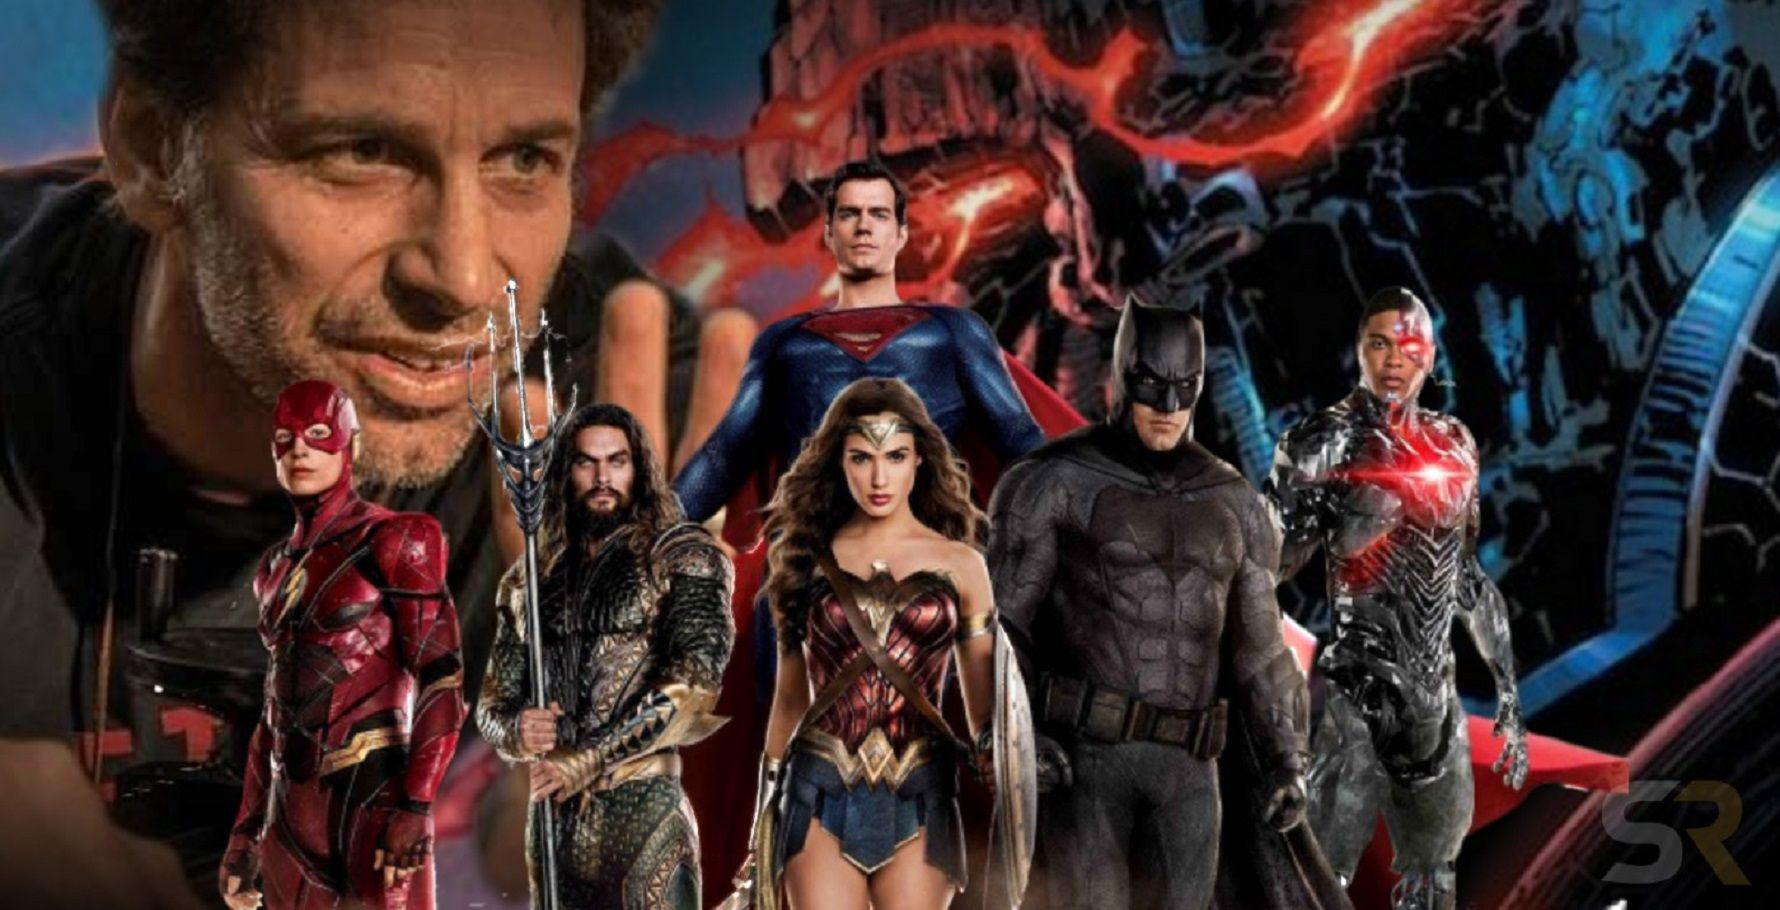 Justice League: Snyder Cut Poster Shared By Director Featuring Darkseid